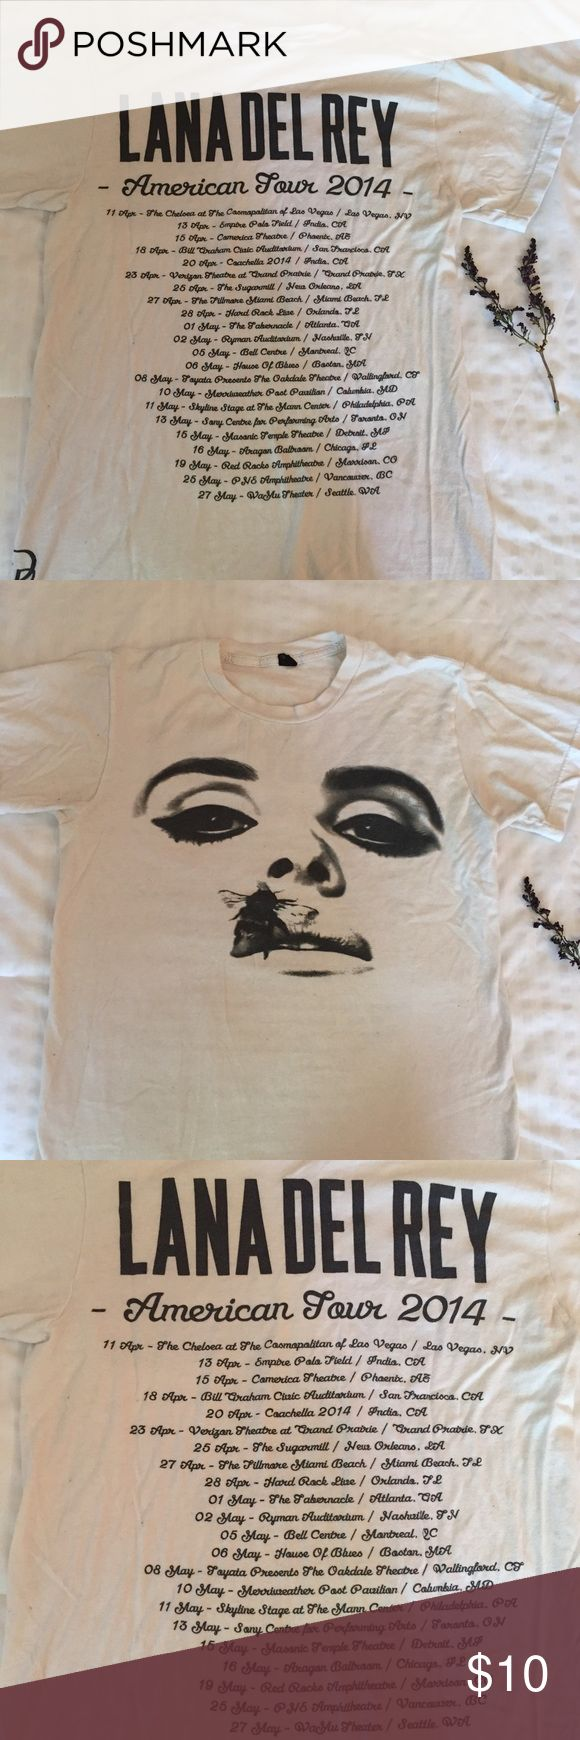 Lana Del Rey Tour T-shirt A t-shirt from Lana Del Rey's 2014 American tour! Tops Tees - Short Sleeve